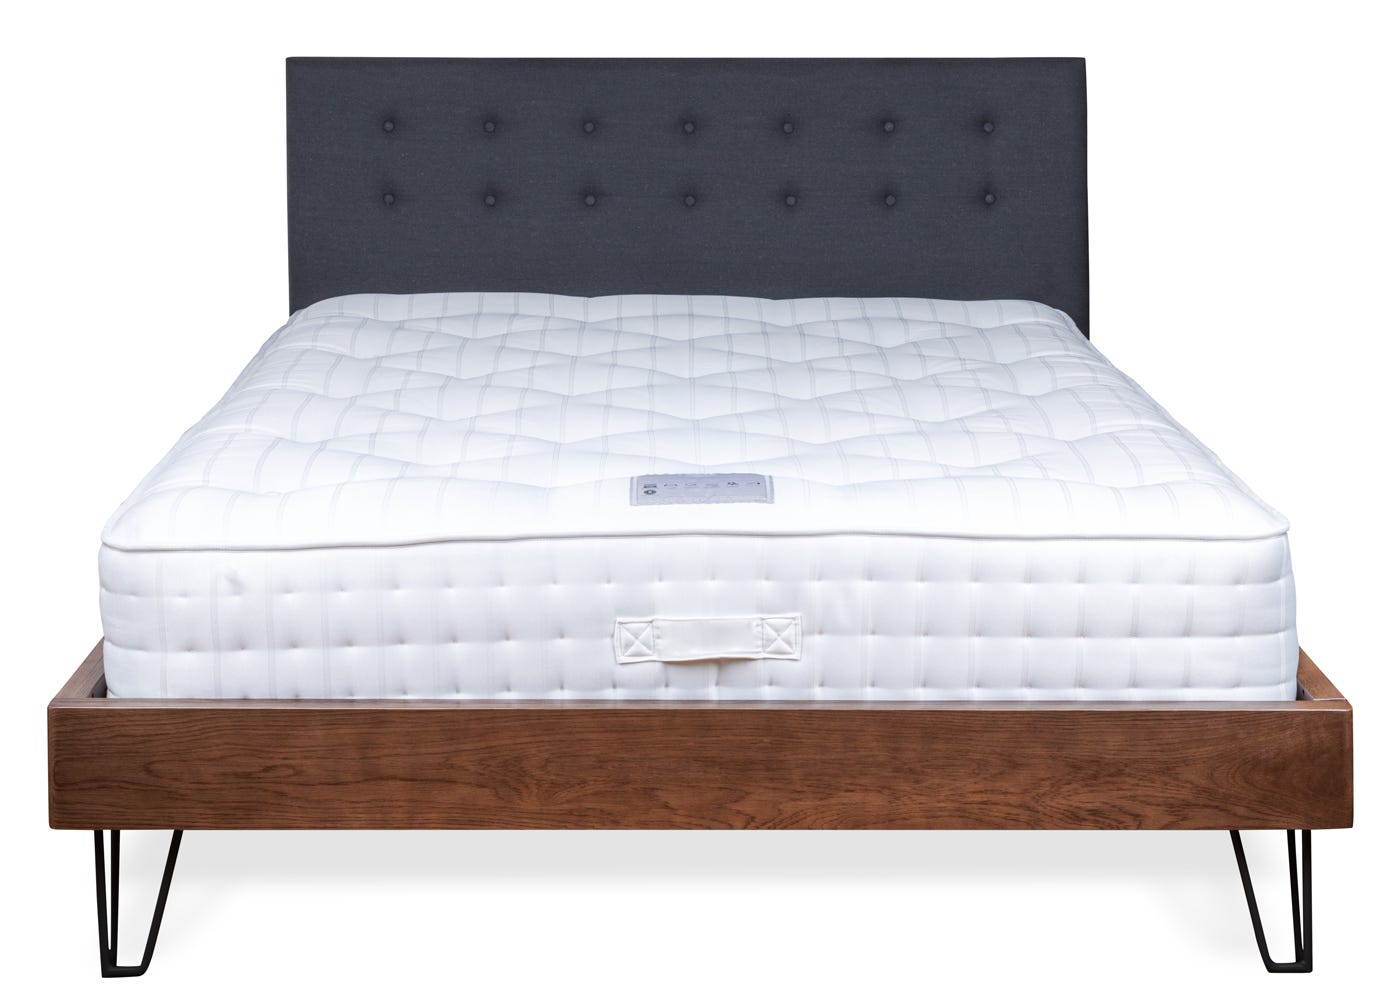 As shown: Brunel Bed Fabric Headboard Grey Dark Wood - Front profile